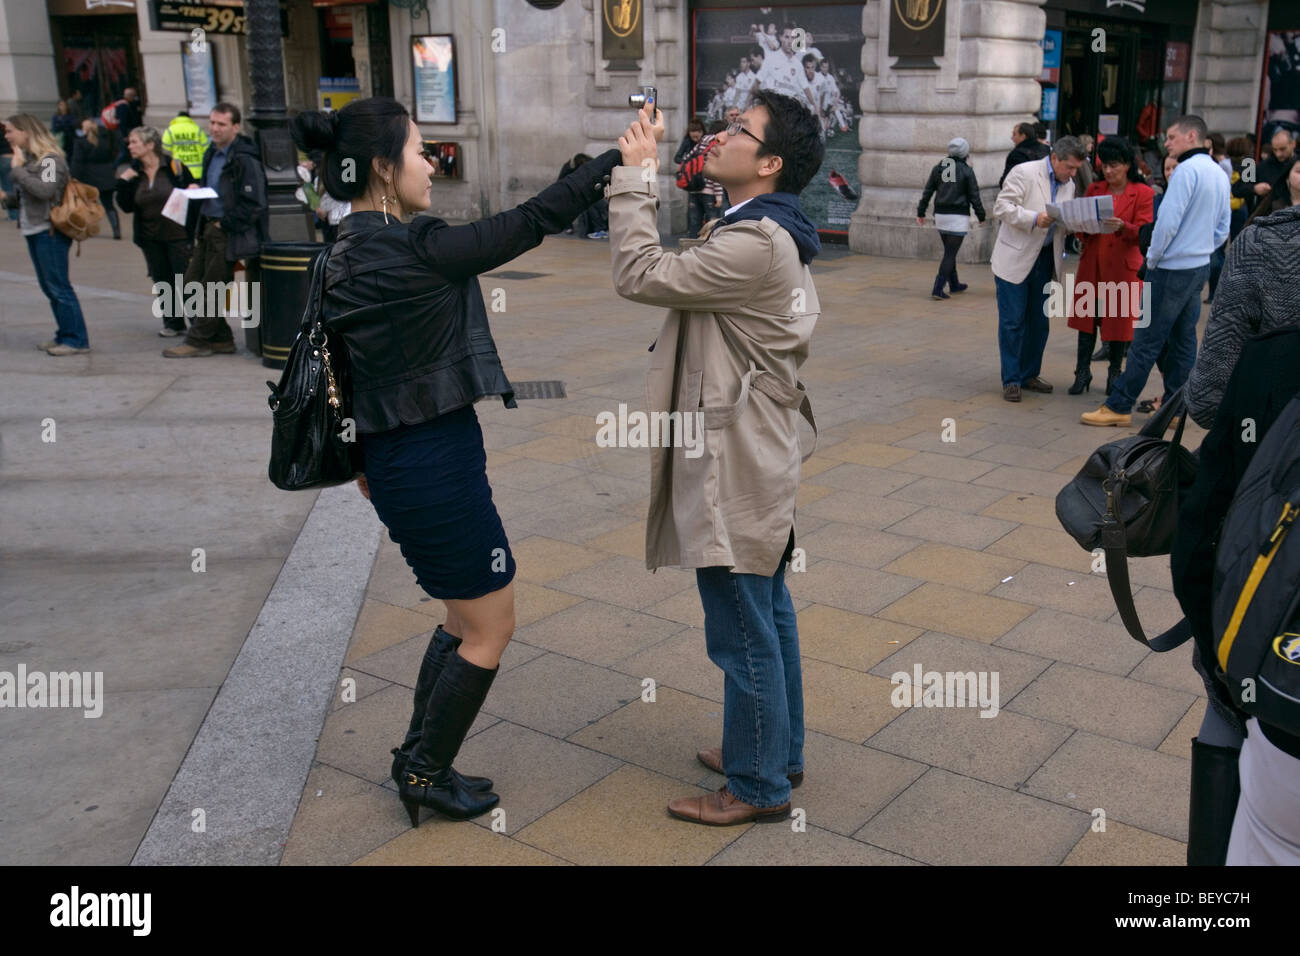 japanese tourists in london - Stock Image